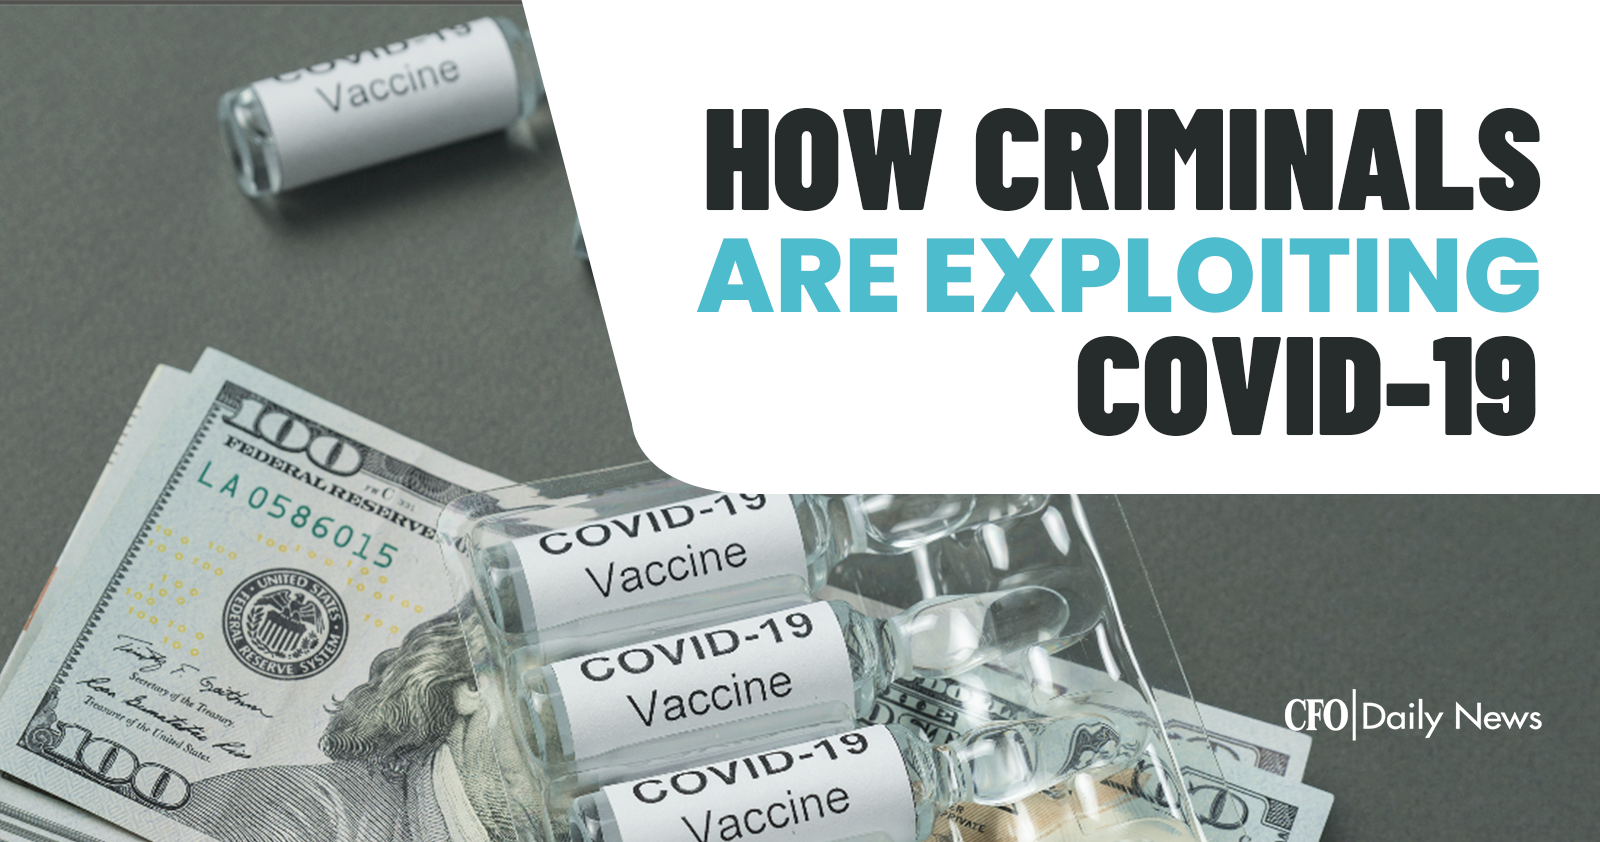 how criminals are exploiting COVID-19